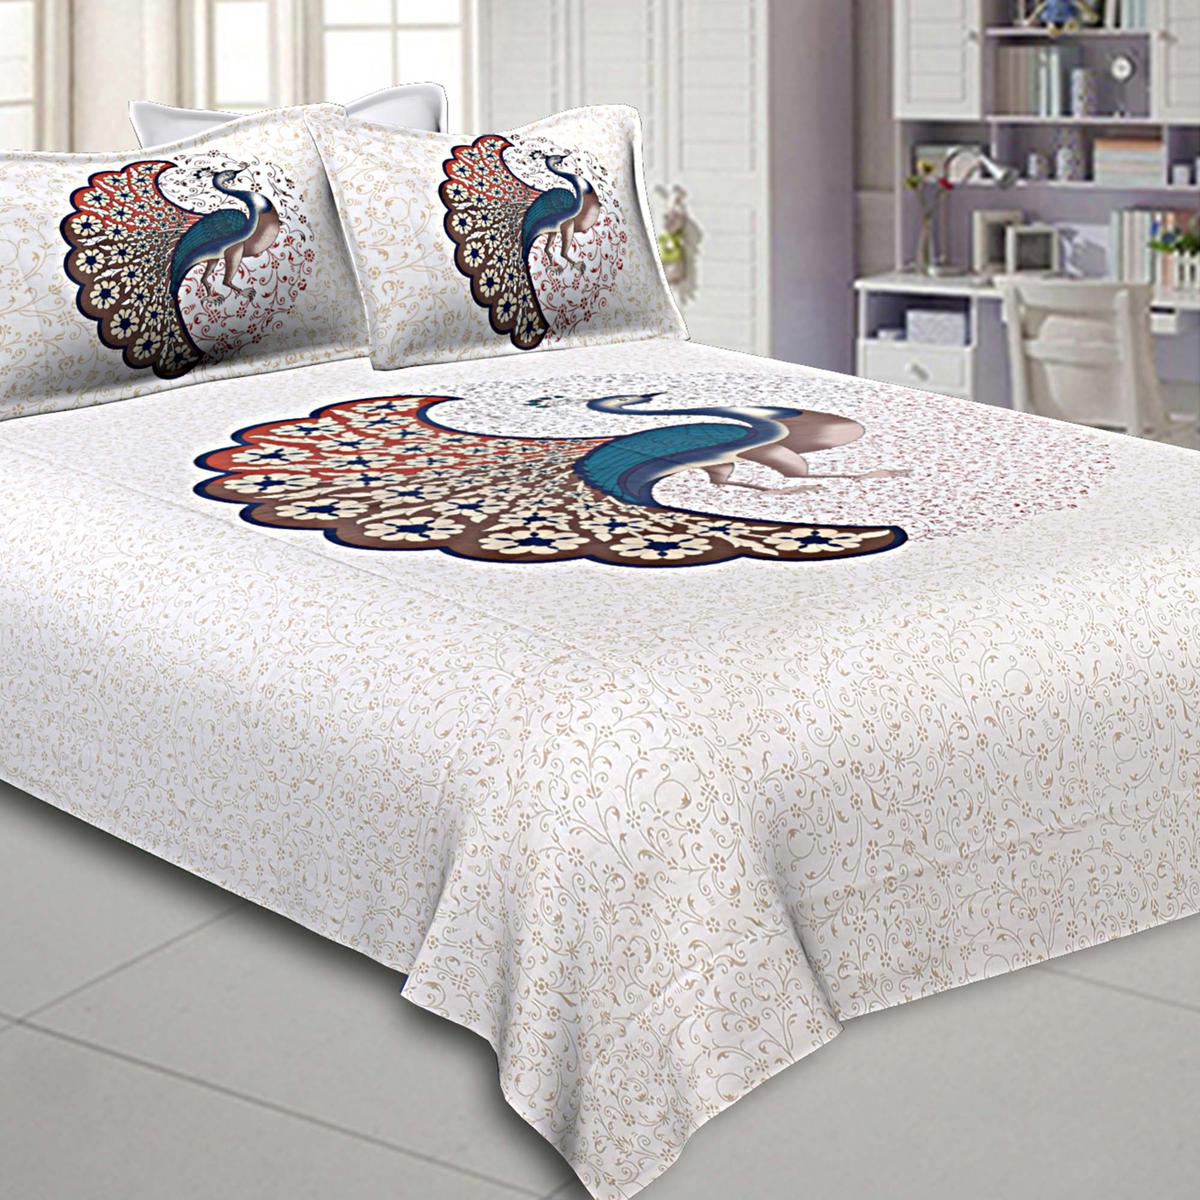 Lovely White Colored Dancing Peacock Printed Pure Cotton Double Bedsheet With Pillow Cover Set